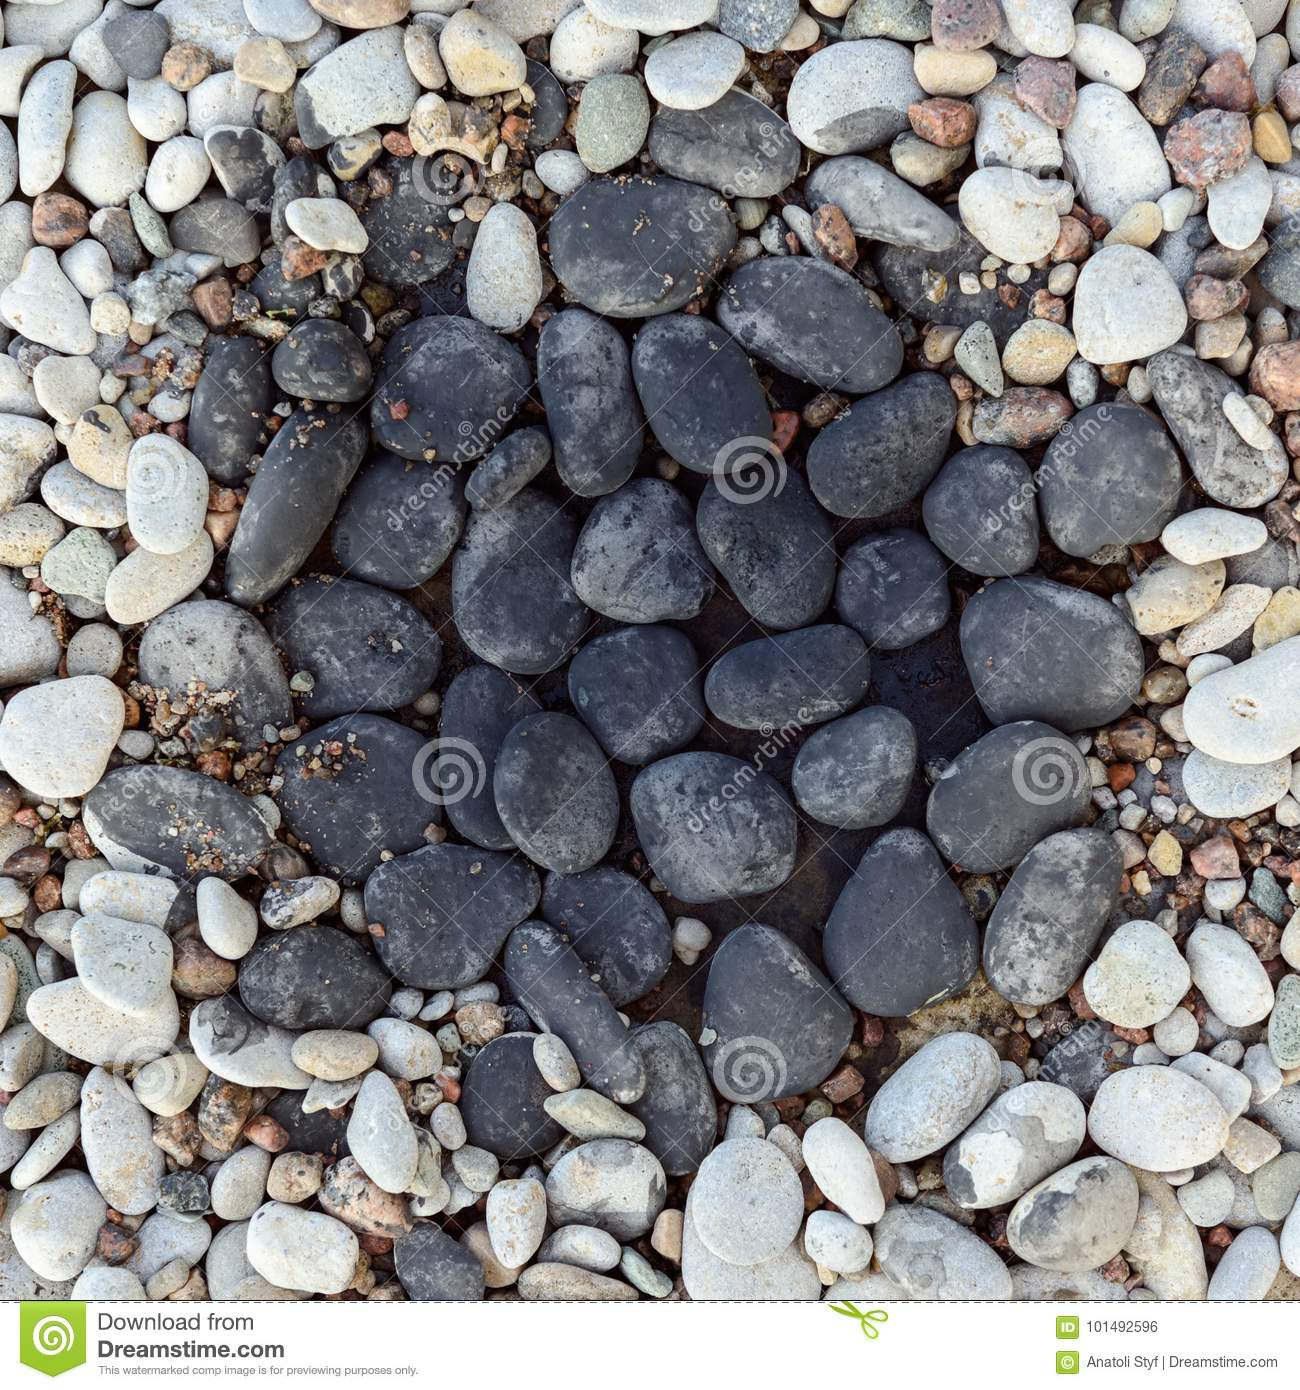 Download Pebbles In Rock Garden Stock Photo. Image Of Bend, Beach    101492596